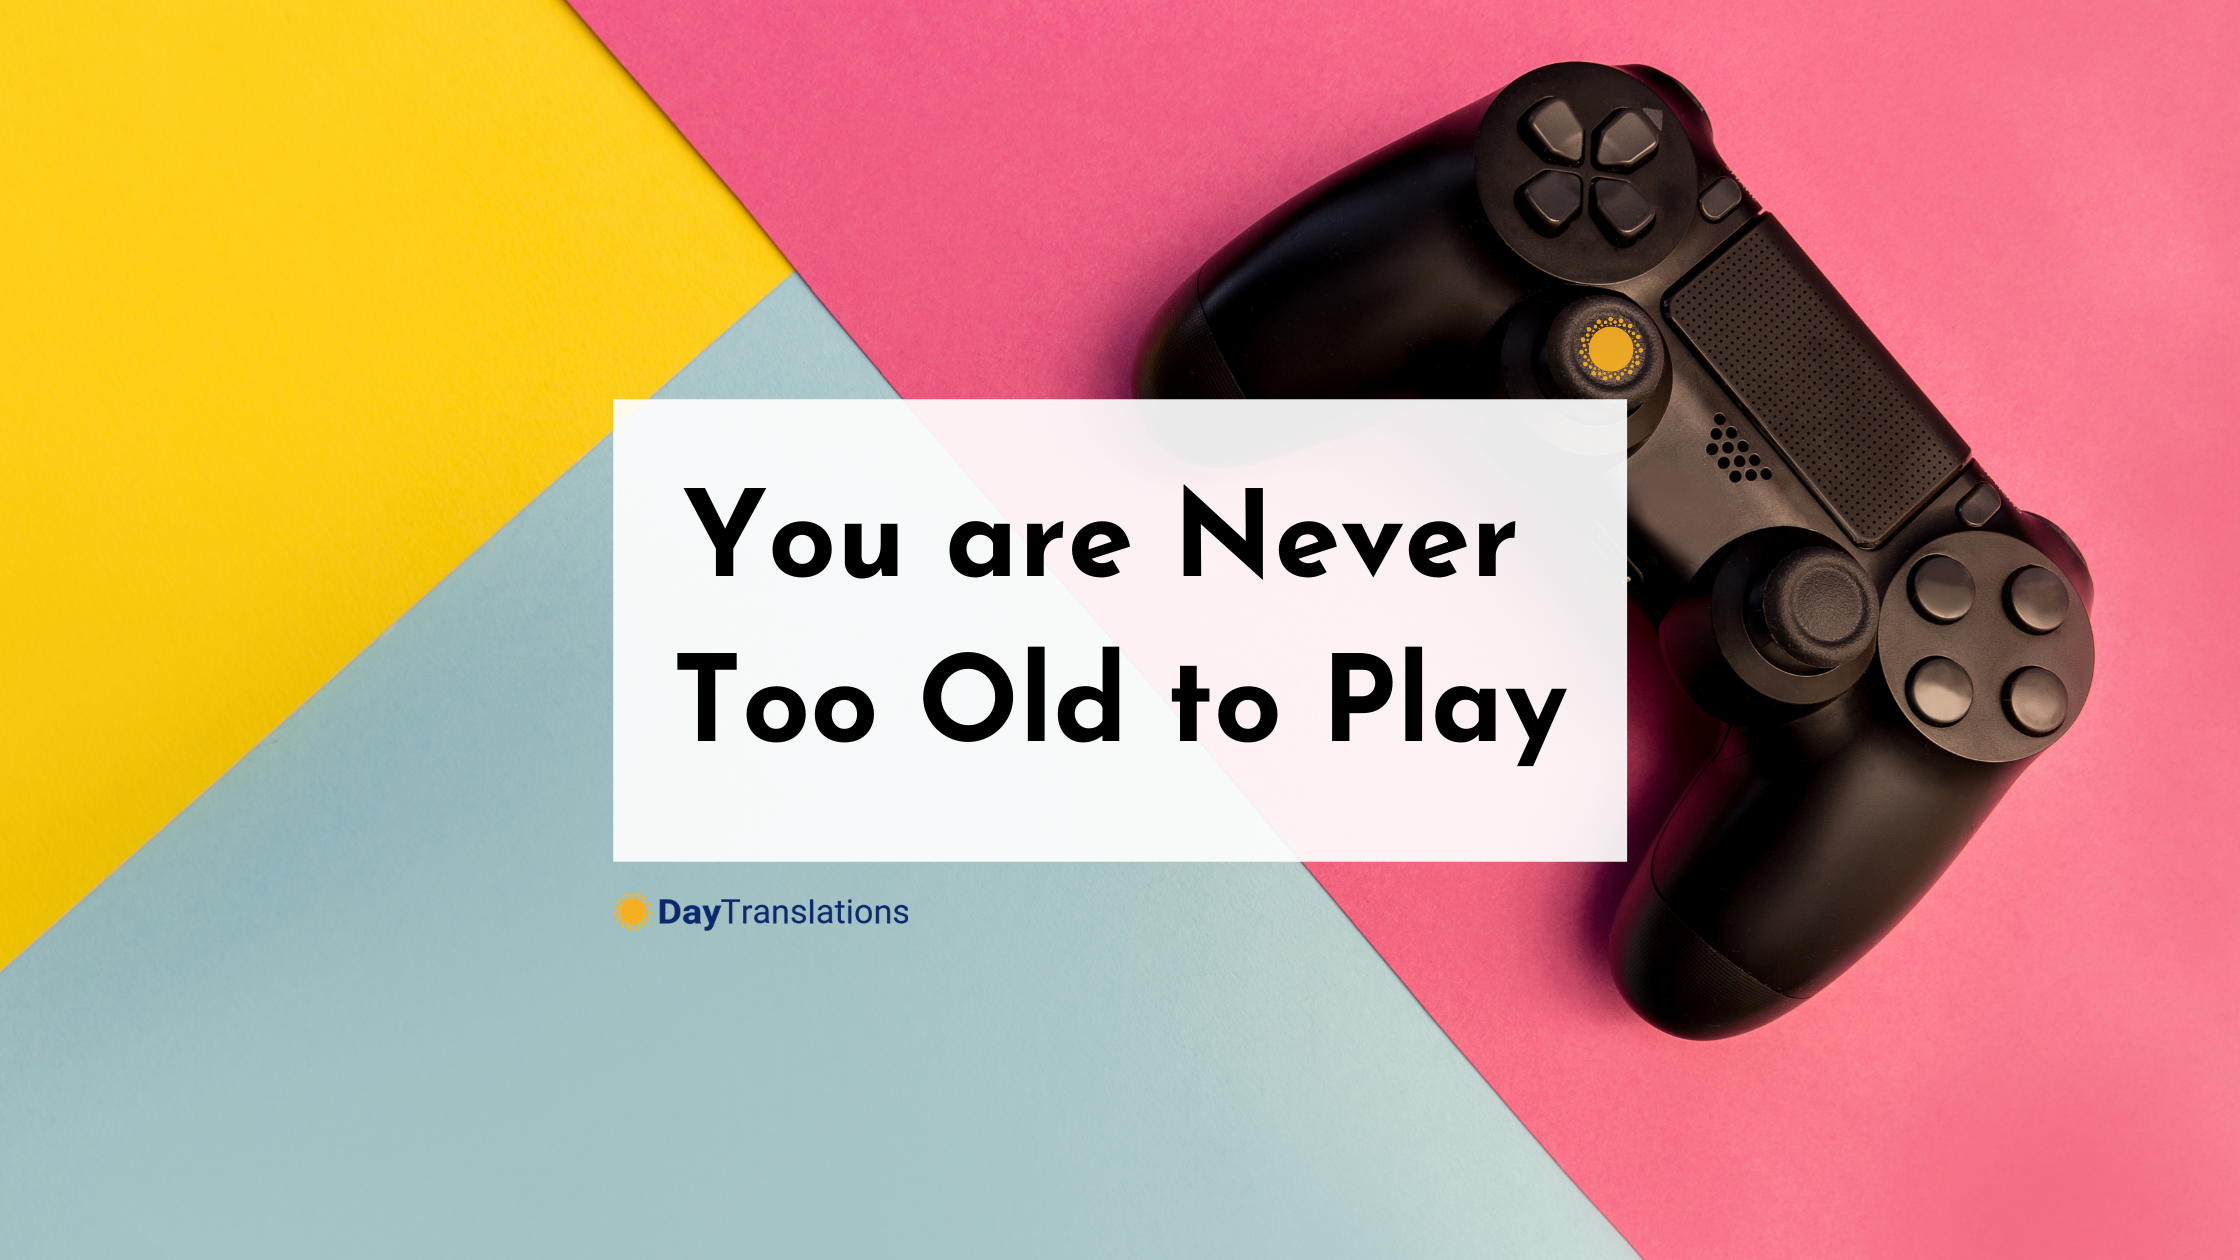 You are Never Too Old to Play